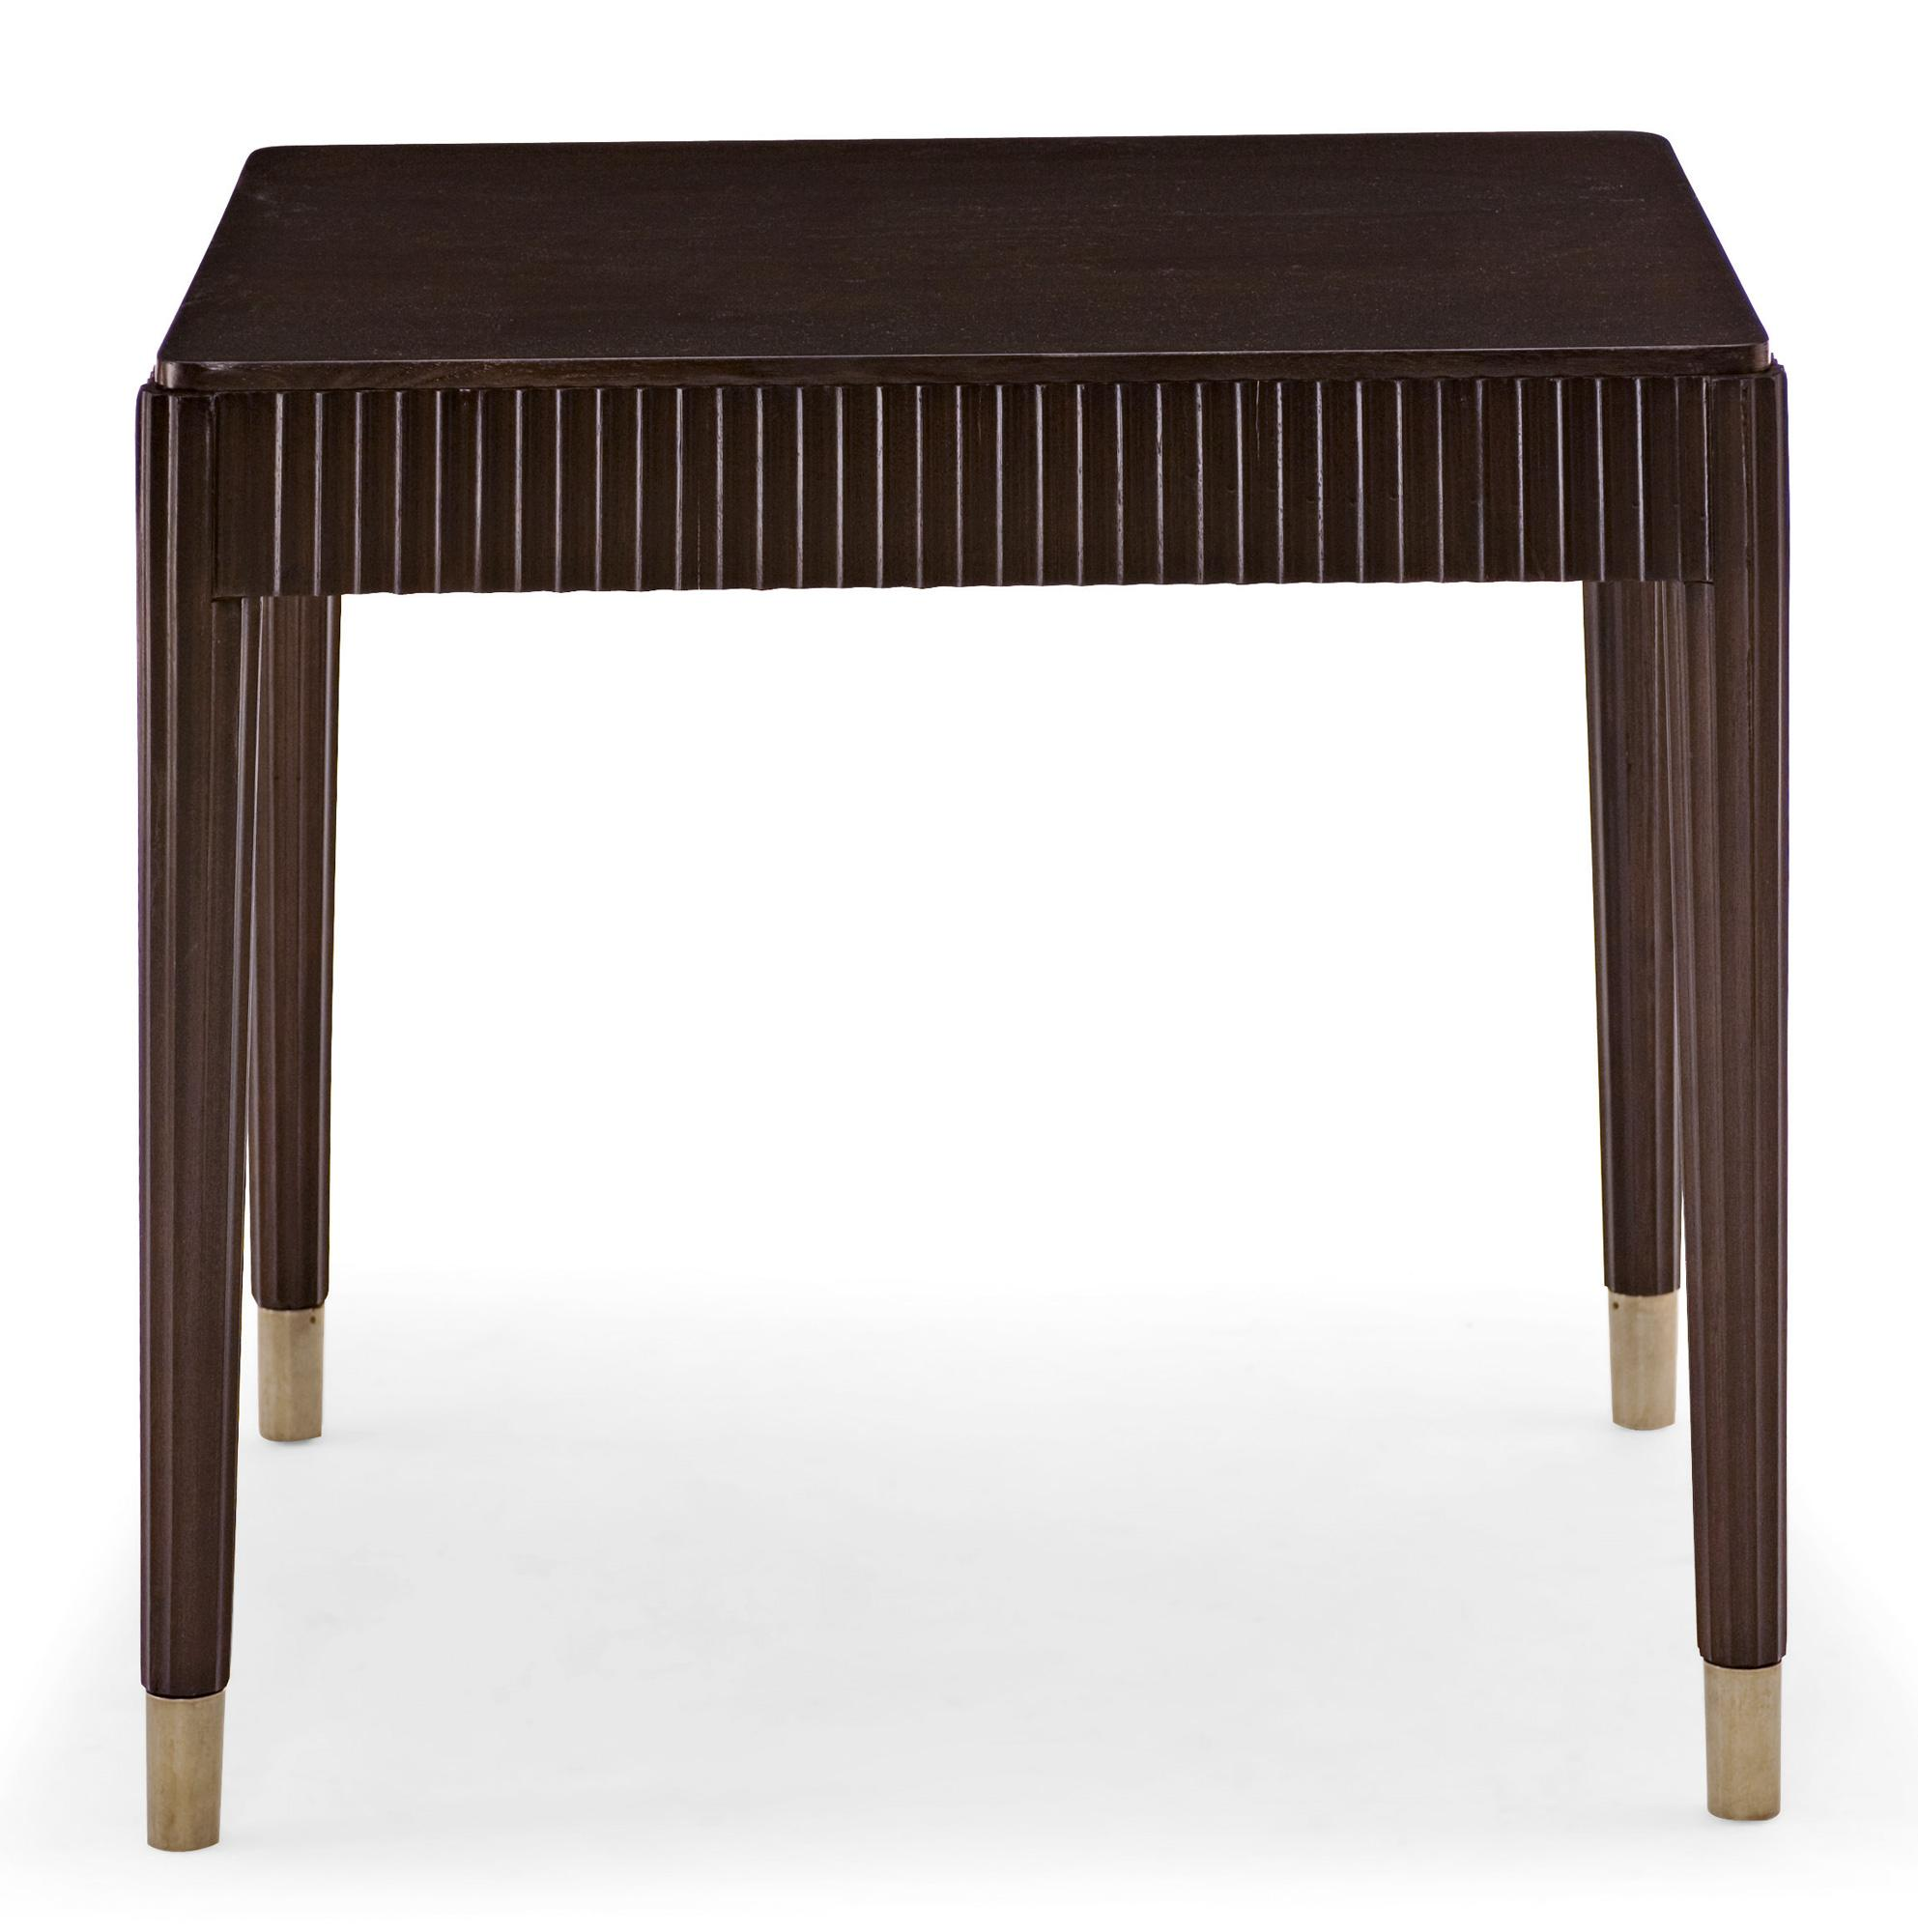 Bernhardt haven 346 112r end table with fluting dunk for Bright colored side tables